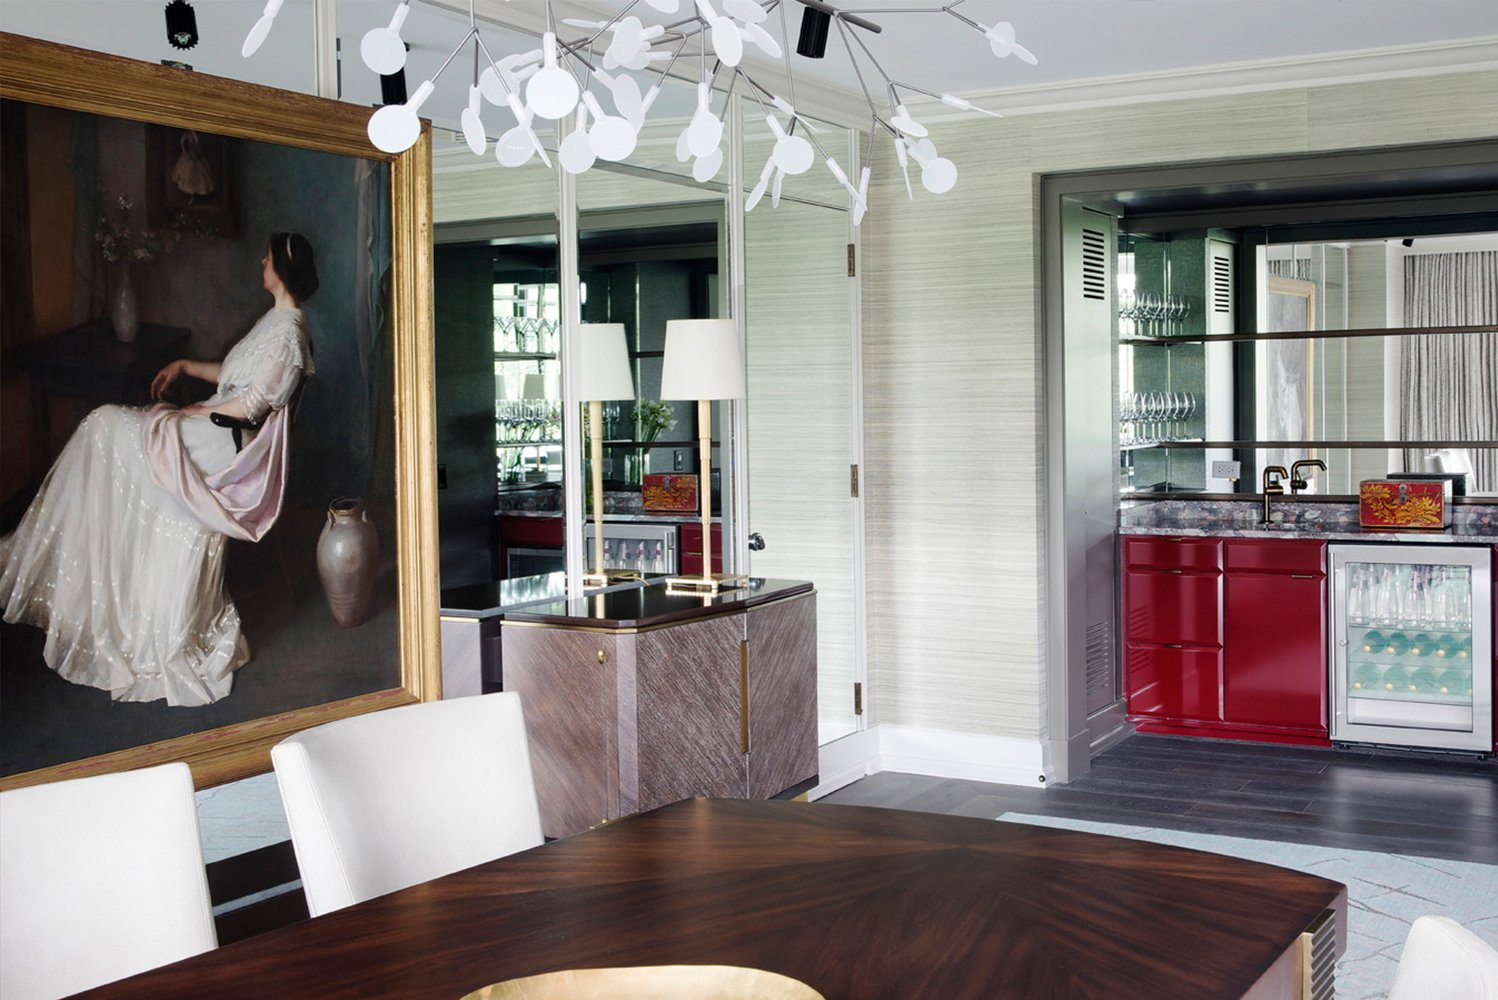 Ranging from 1,200 square feet (110 square meters) to 1,700 square feet (160 square meters), the suites' design was led by design group BAMO with the team at Four Seasons Hotel Boston.